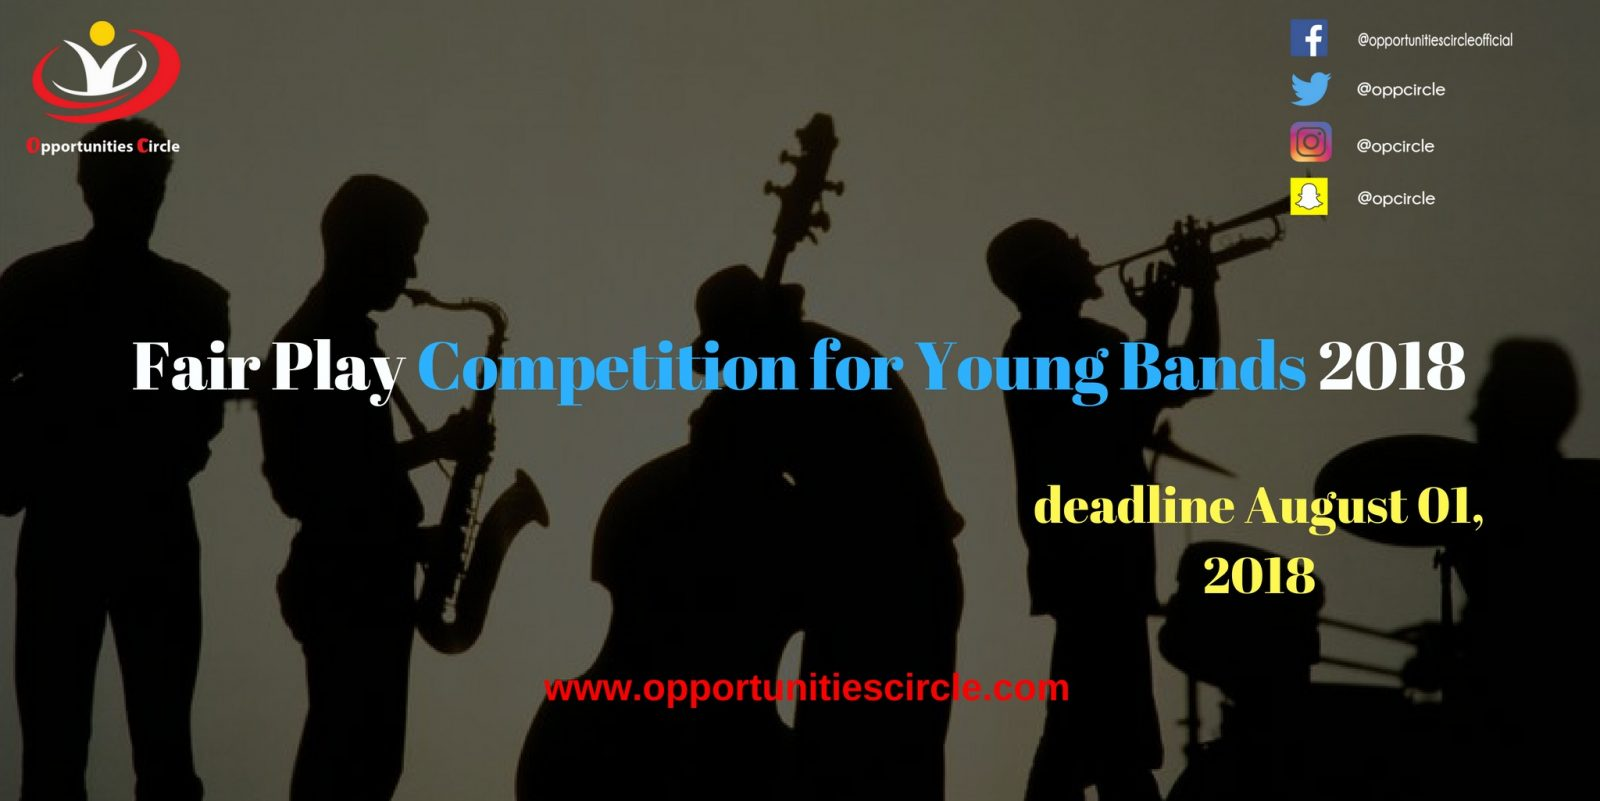 Fair Play Competition for Young Bands 2018 - Fair PlayCompetition for Young Bands 2018